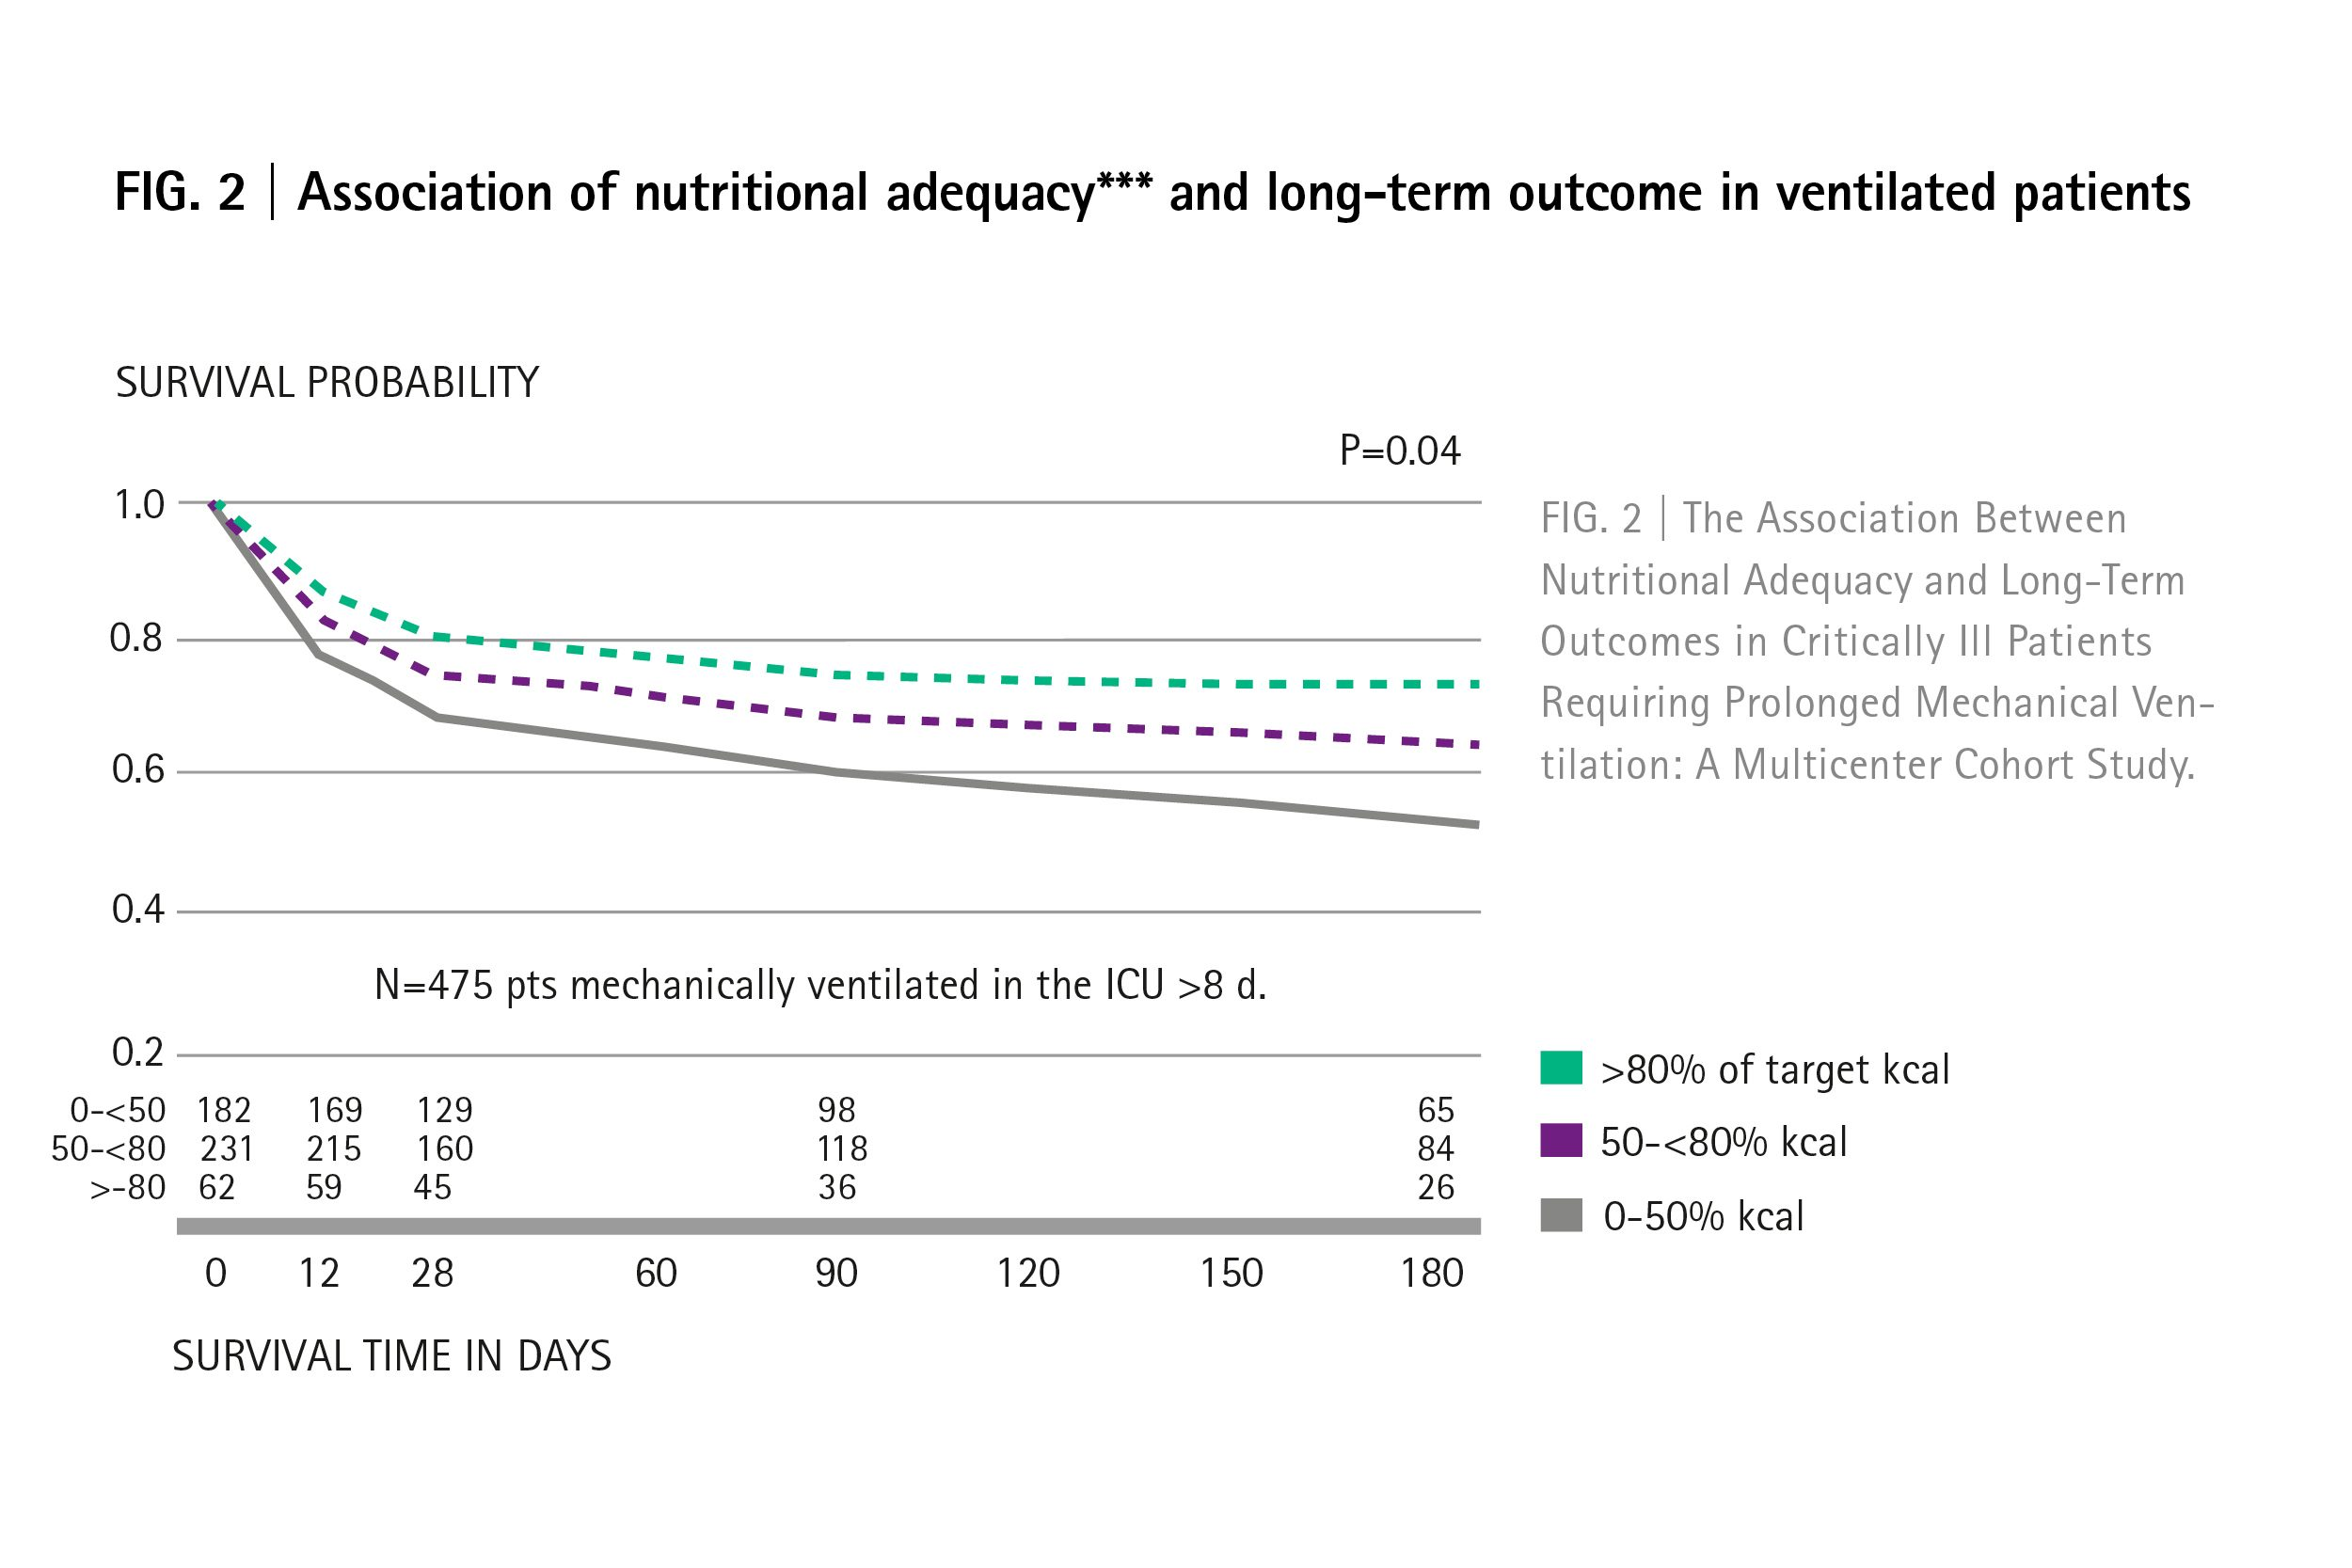 Nutritional adequacy in ventilated patients.